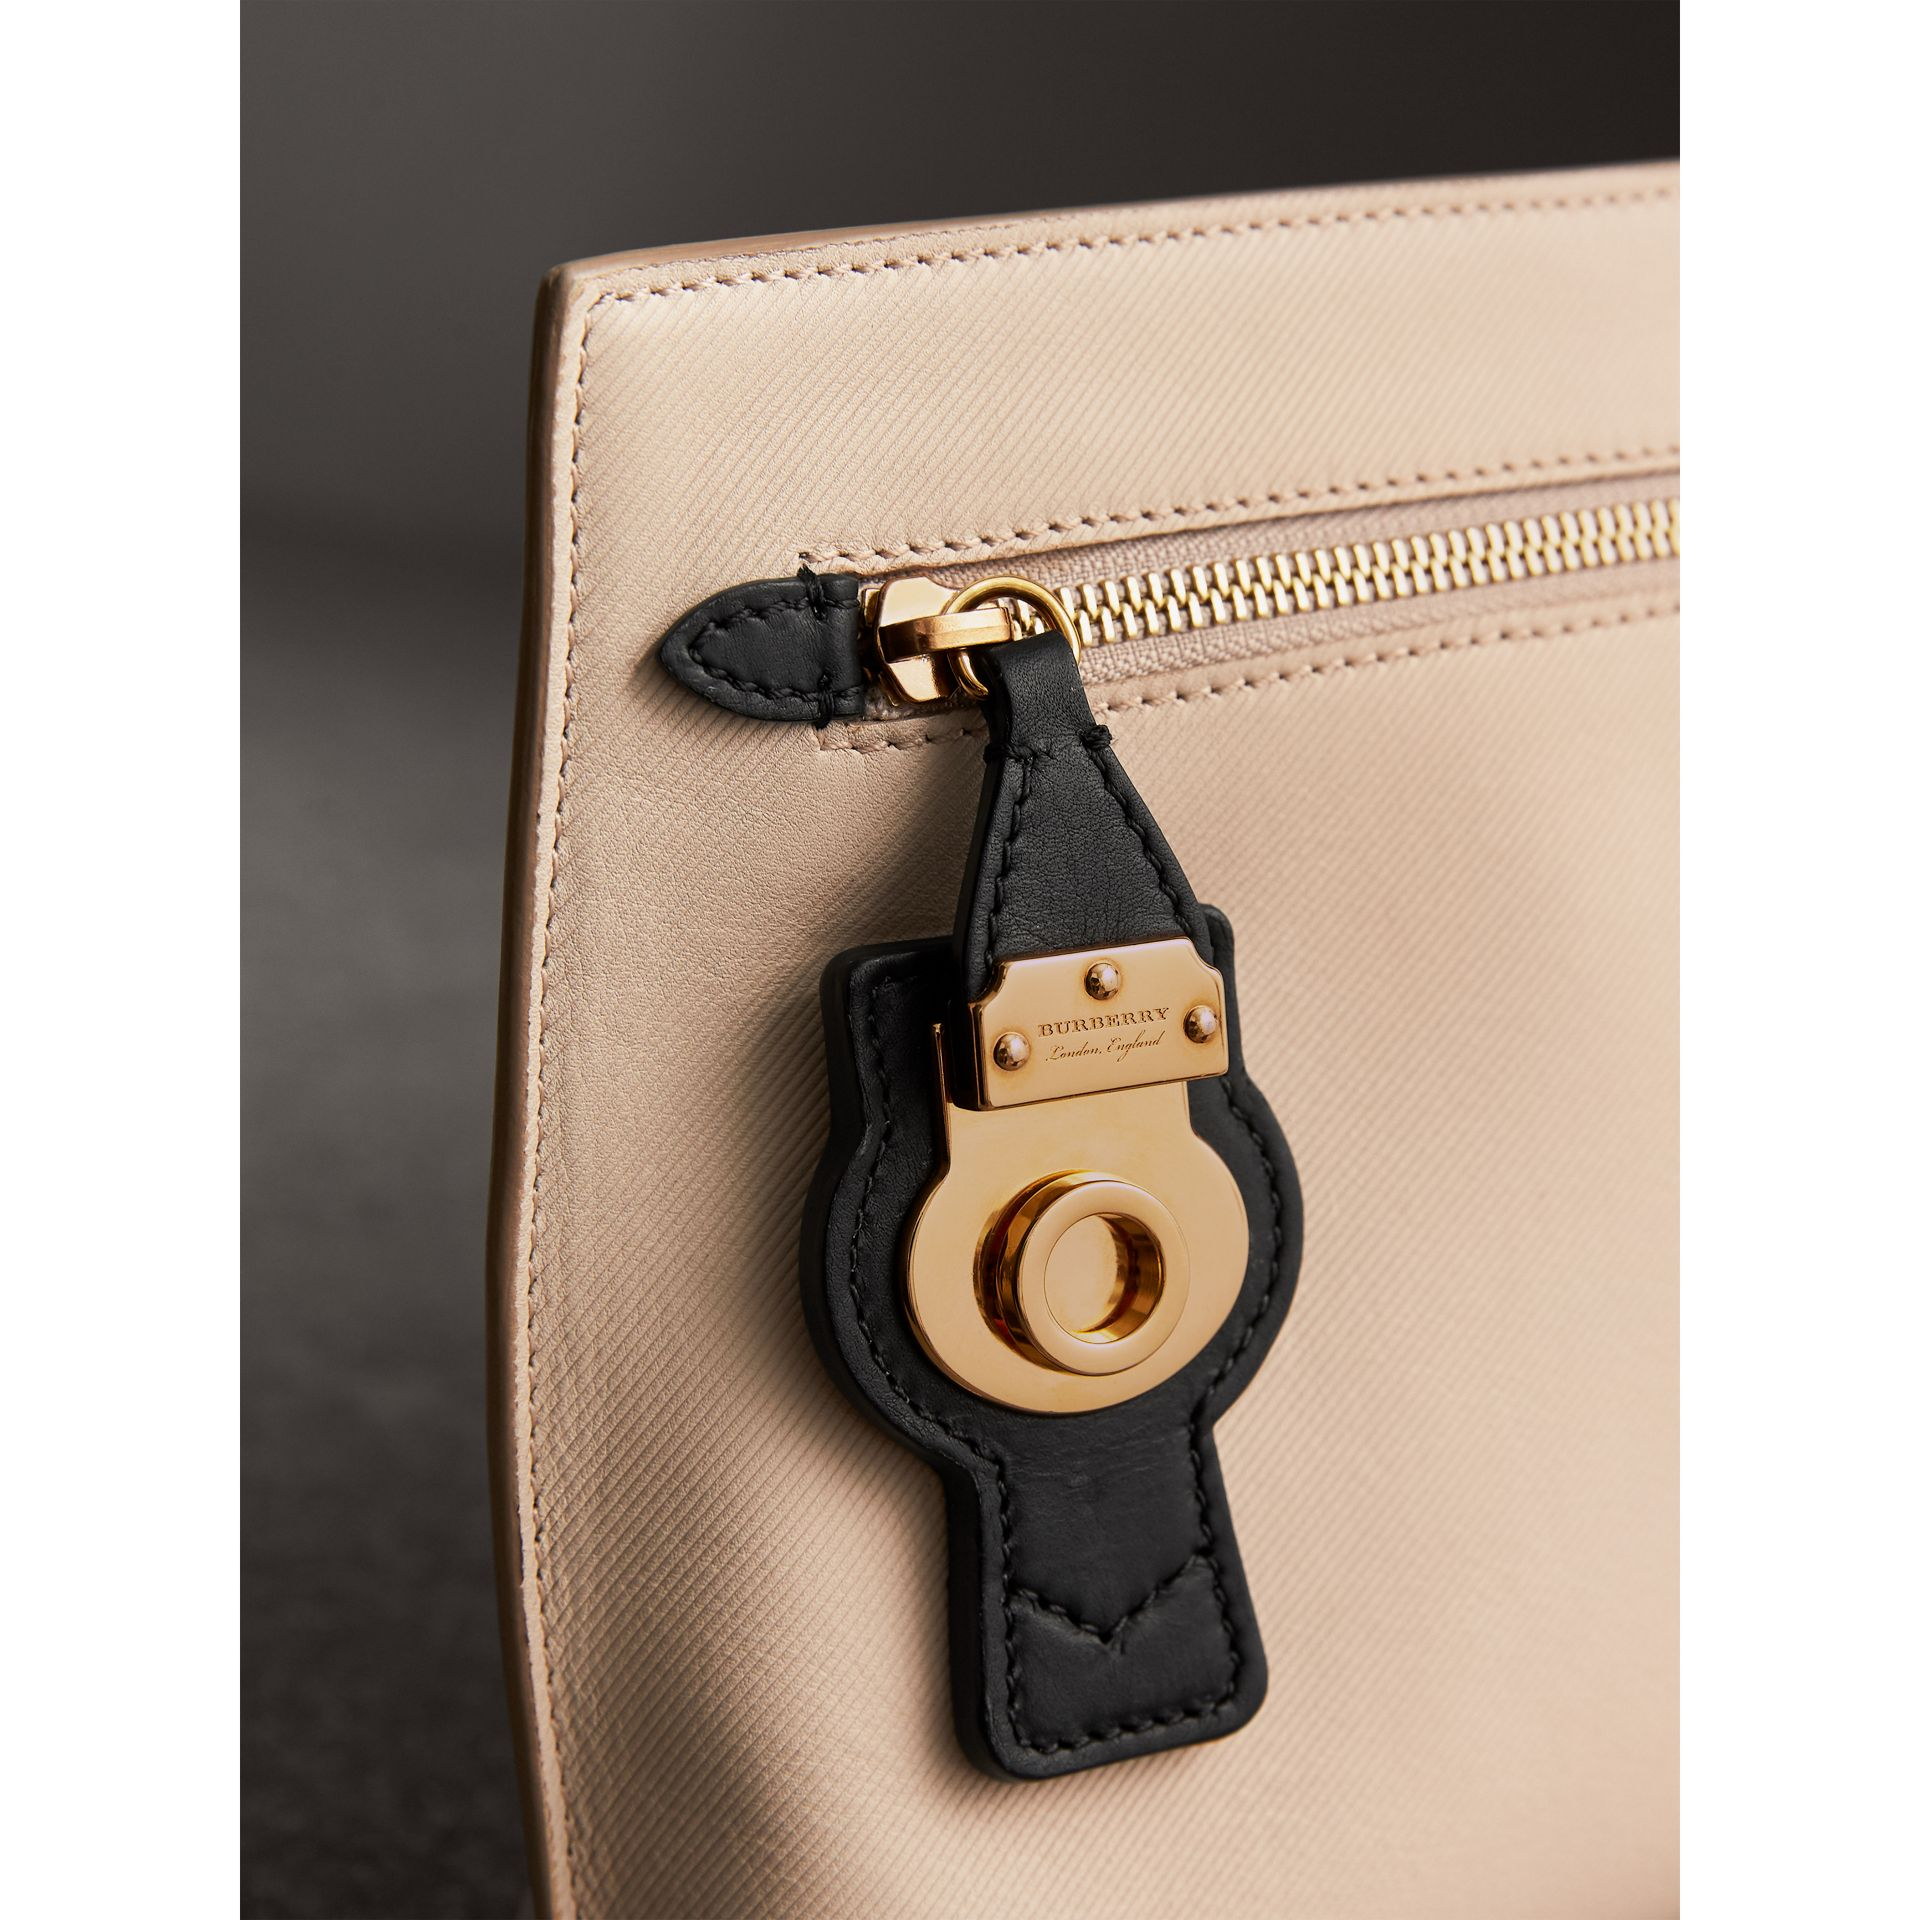 Two-tone Trench Leather Wristlet Pouch in Limestone/black - Women | Burberry United States - gallery image 1